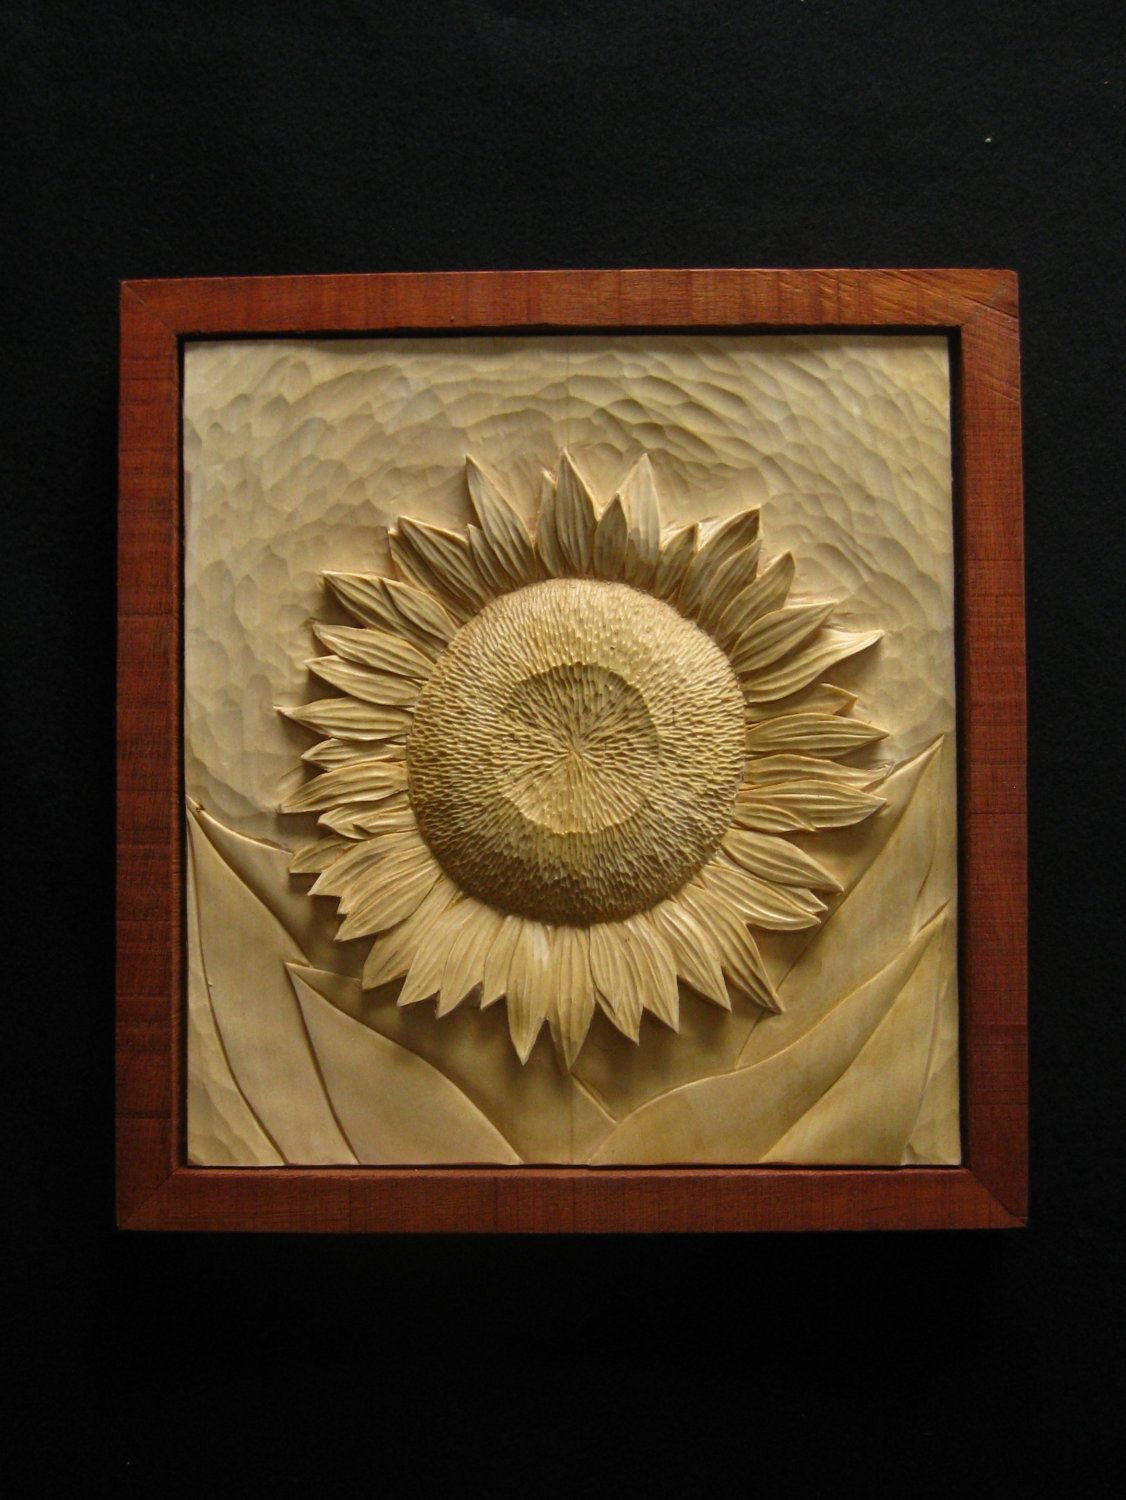 Wood Carving Dremel Sunflower Wood Carving Got To Try This With My New Dremmel